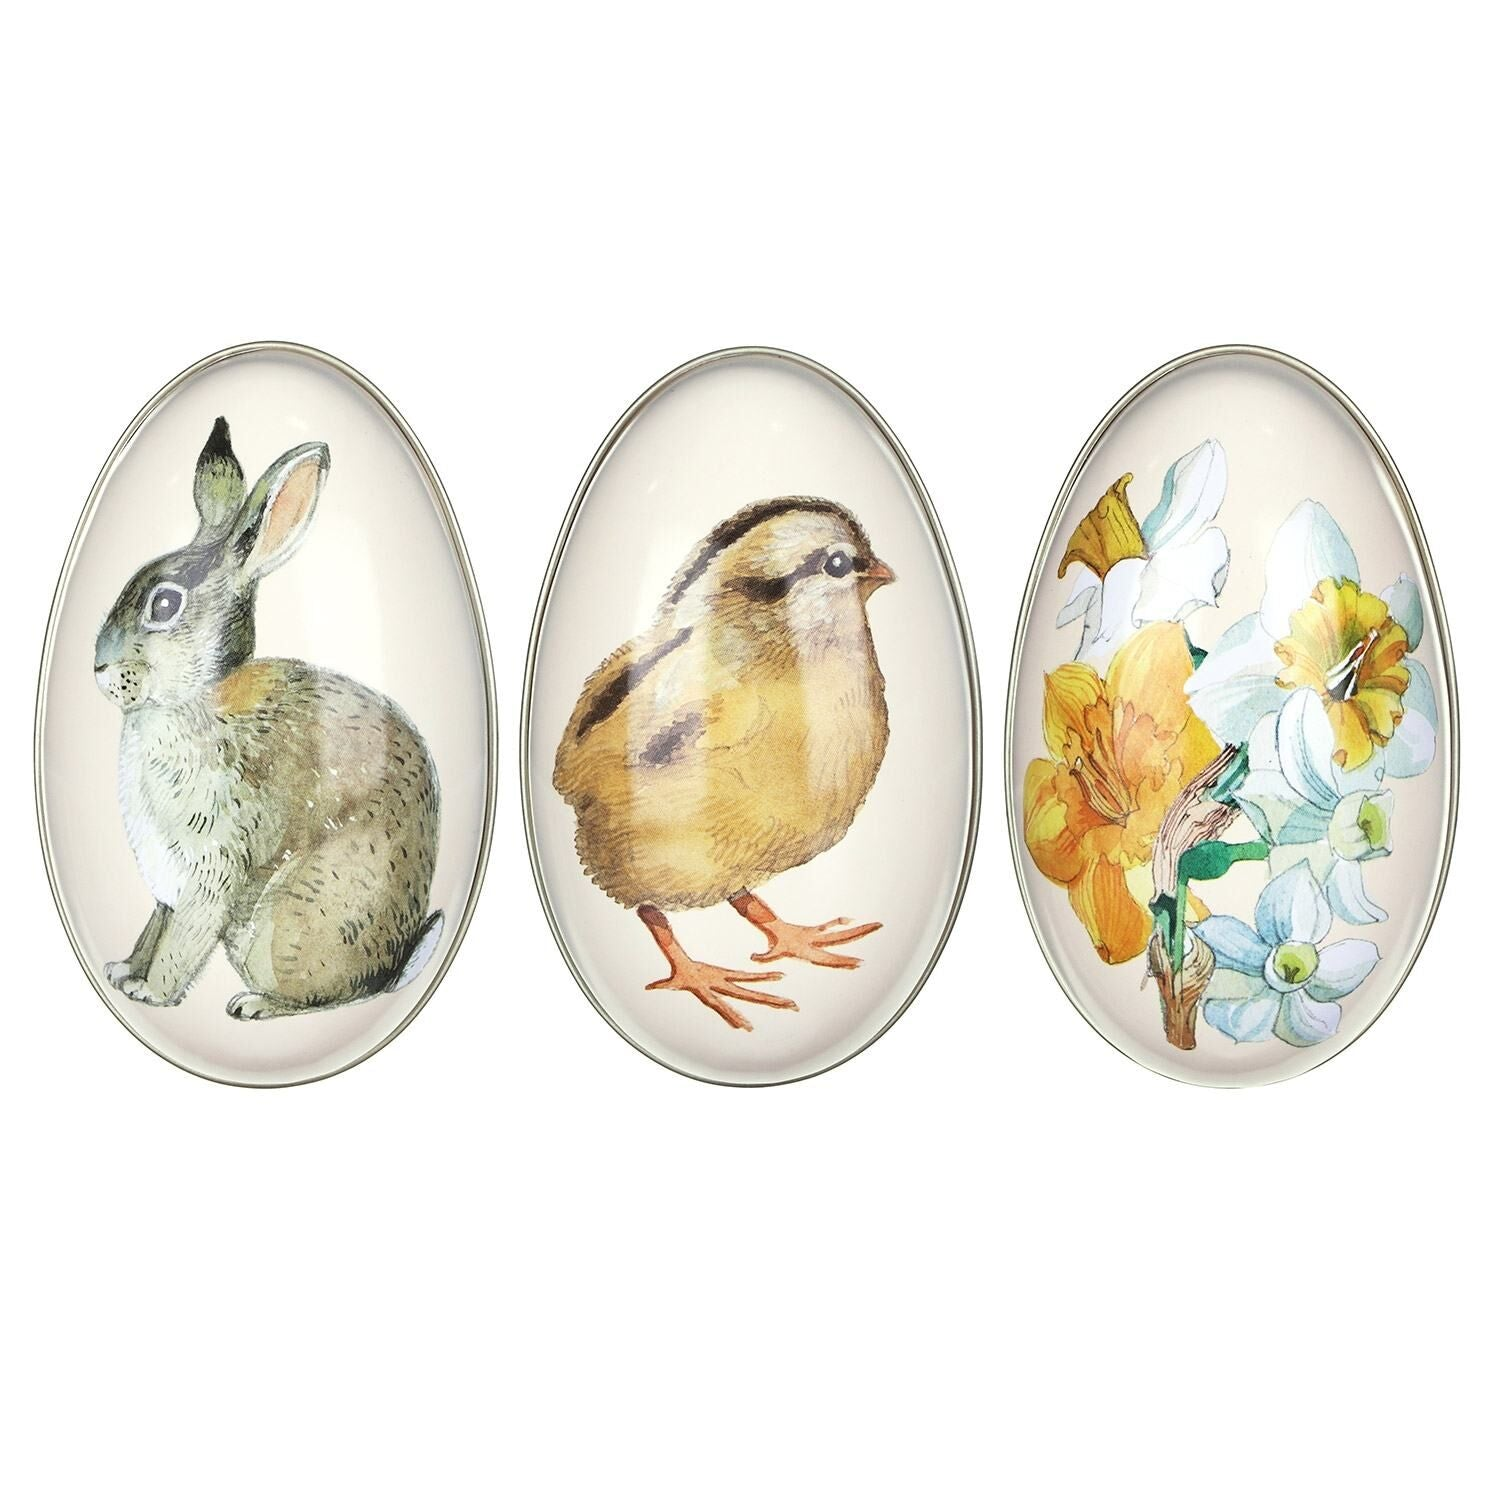 Tin Egg - Emma Bridgewater Medium Chick